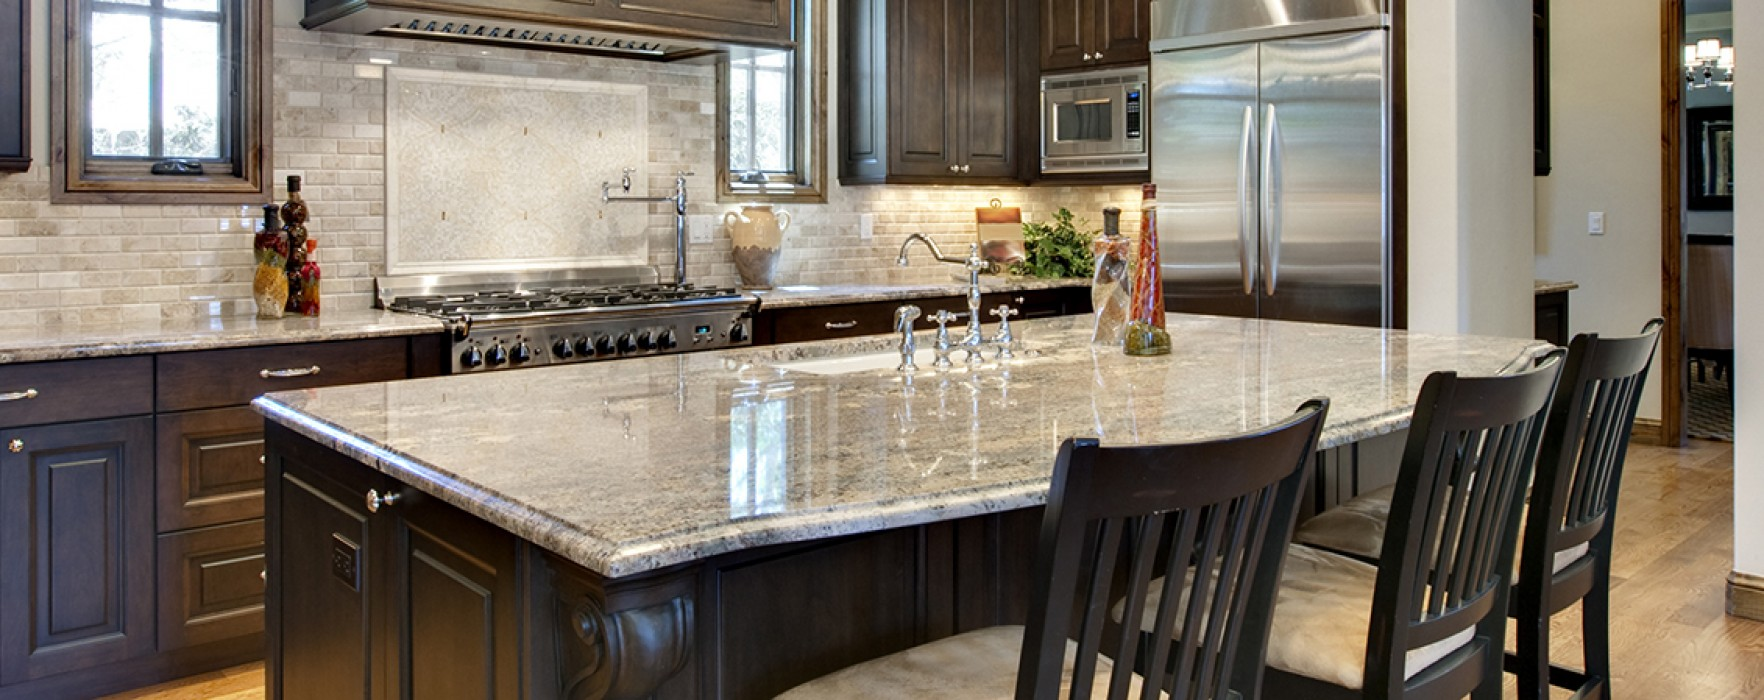 Easy Kitchen Makeover: Refinished Countertops